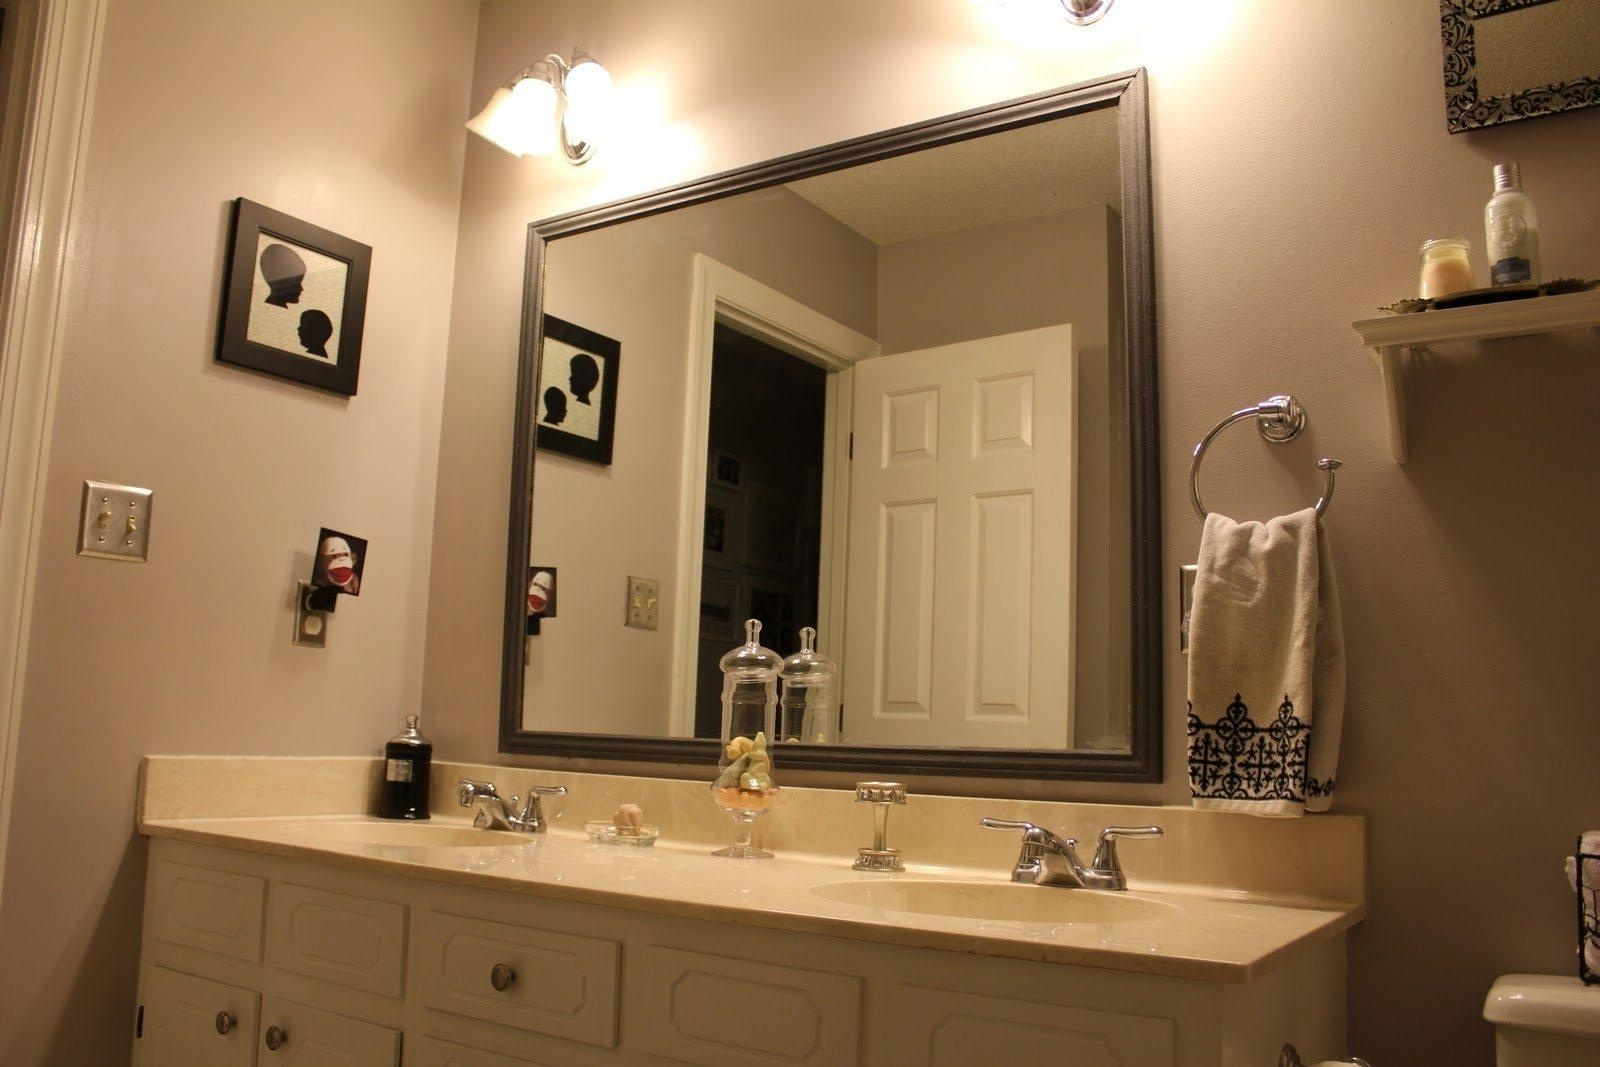 Bathrooms Design : Large Framed Bathroom Mirrors Oval Mirror Inside Frameless Beveled Bathroom Mirrors (Image 7 of 20)